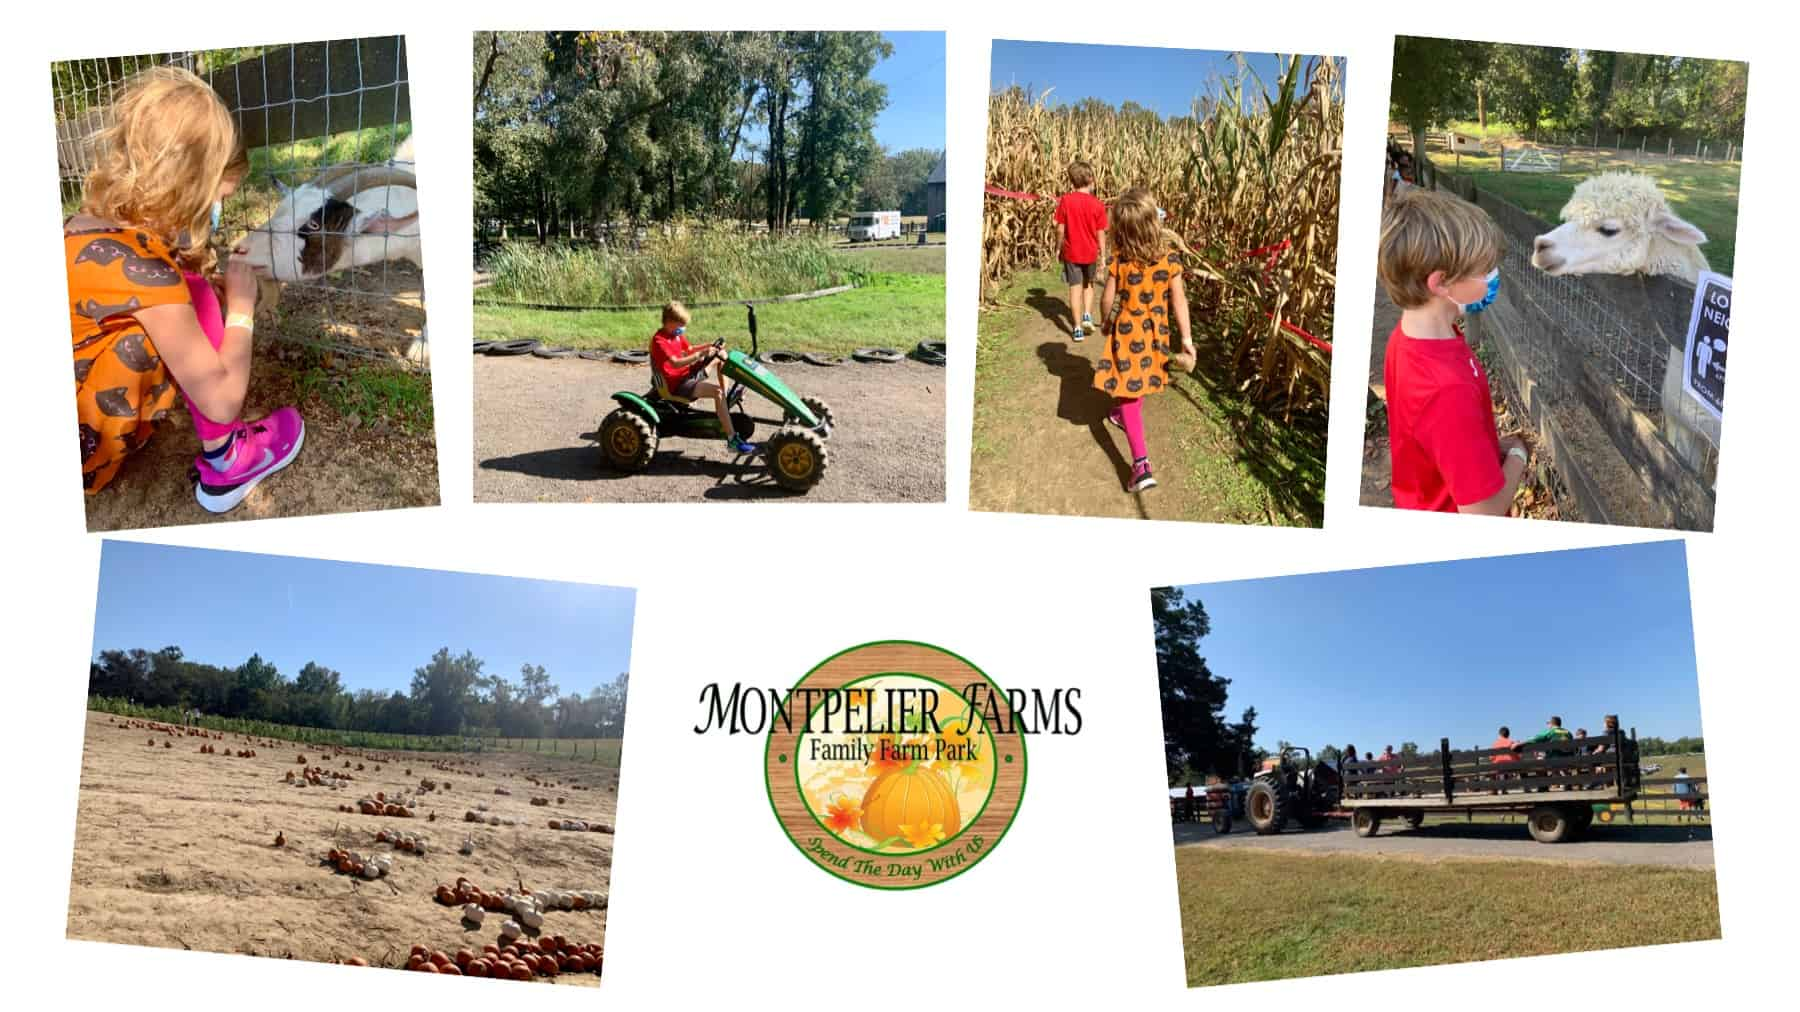 Montpelier Farms Pumpkin Patch